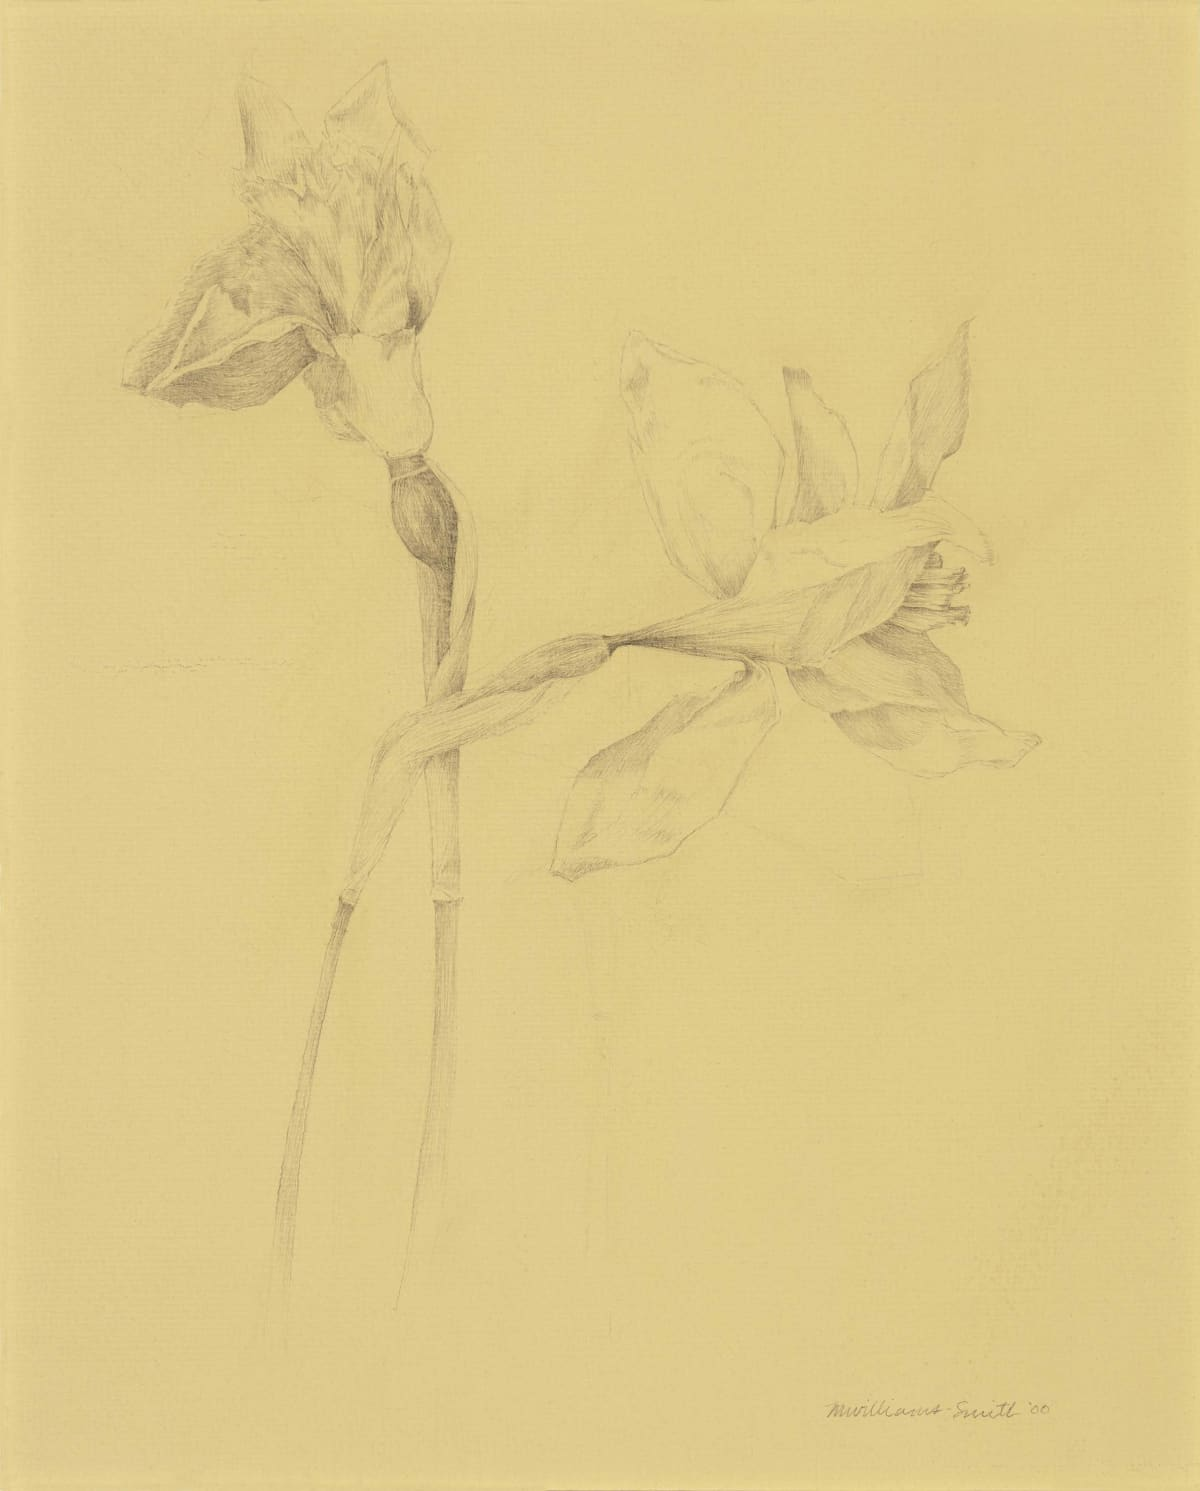 Marjorie Williams-Smith Untitled , 2000 Silverpoint on Tinted Gesso 10 1/8 x 9 3/4